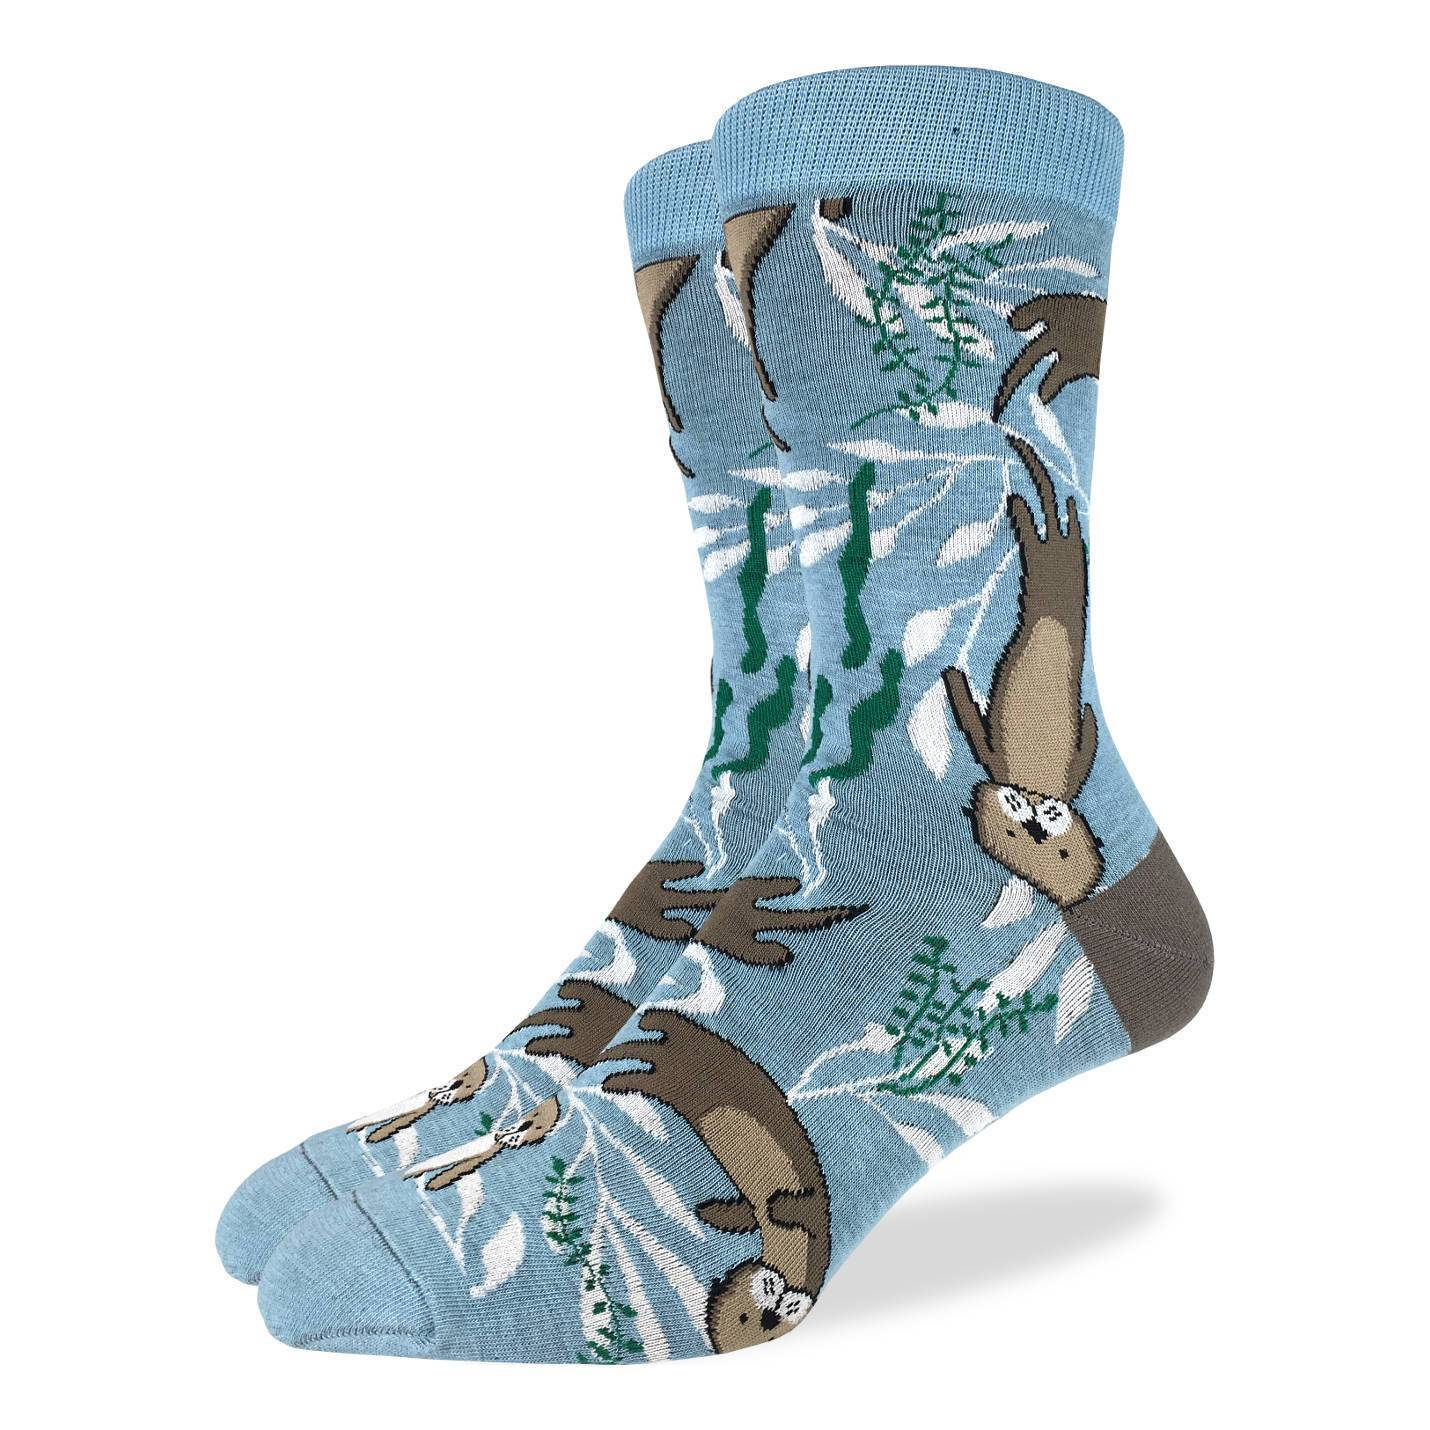 Men's King Size Sea Otter Socks - Good Luck Sock